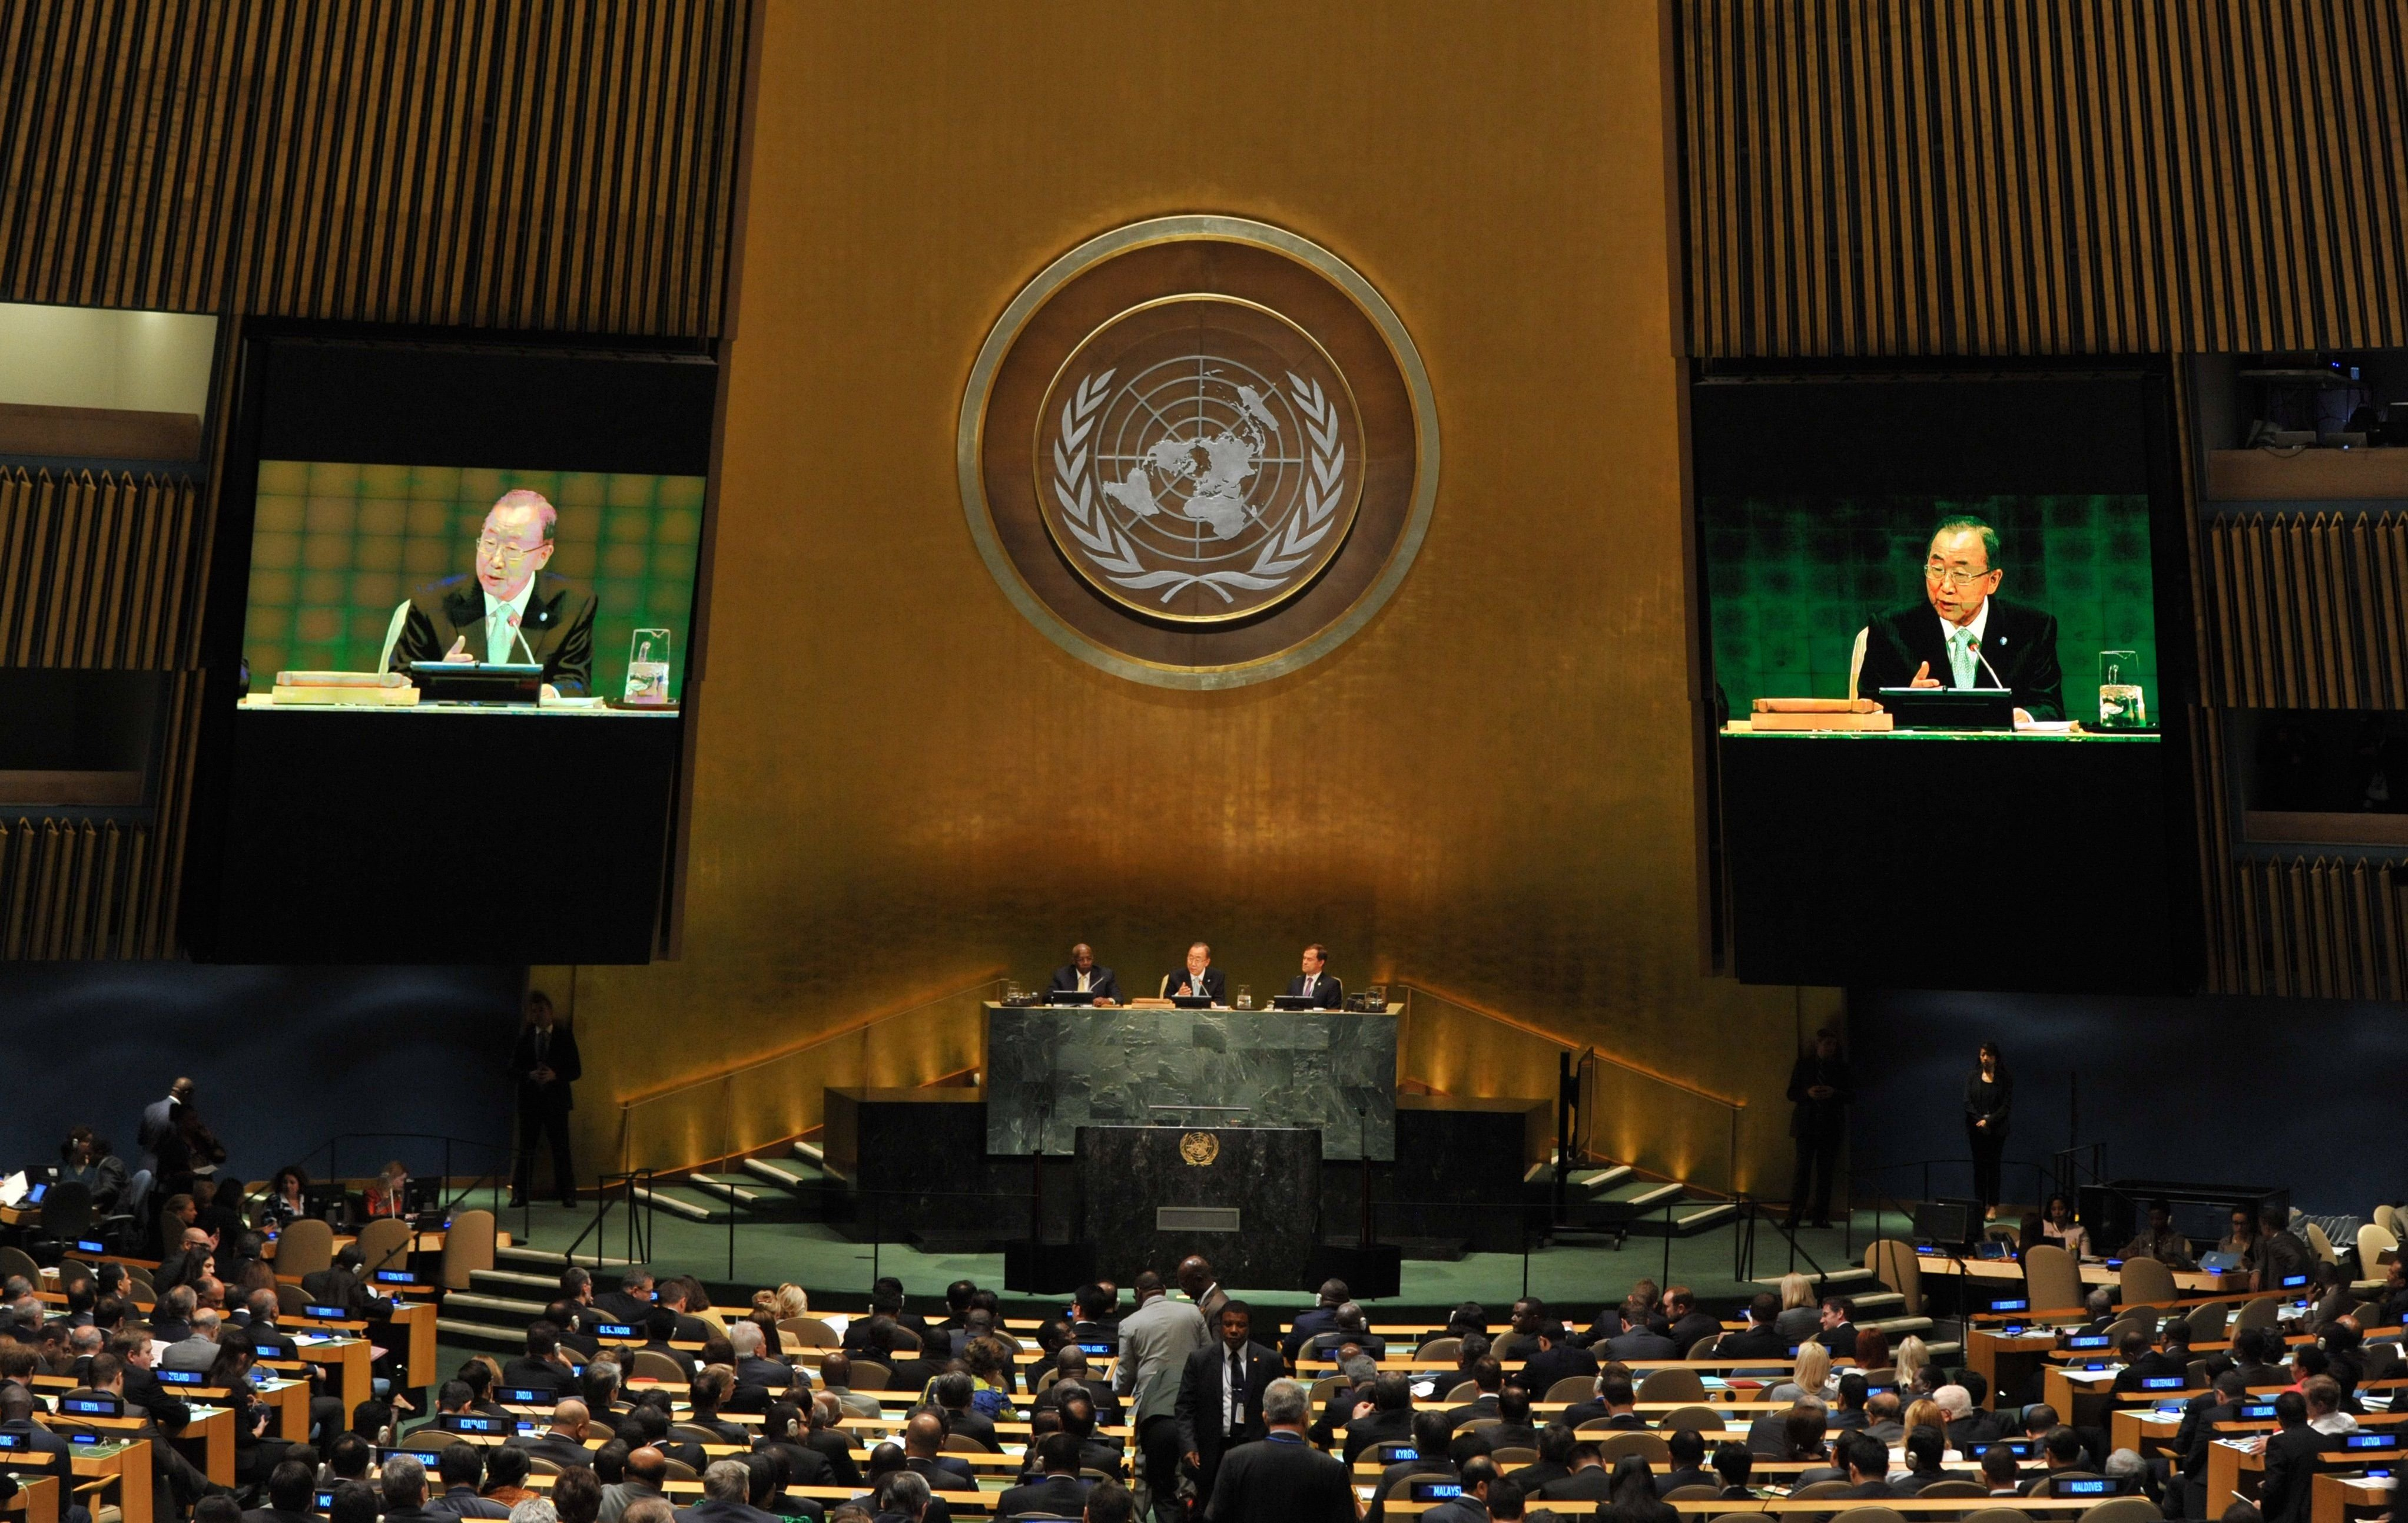 UN Secretary-General Ban Ki-moon speaks during the Opening Session of the Climate Change Summit at the United Nations in New York City on Sept. 23, 2014.